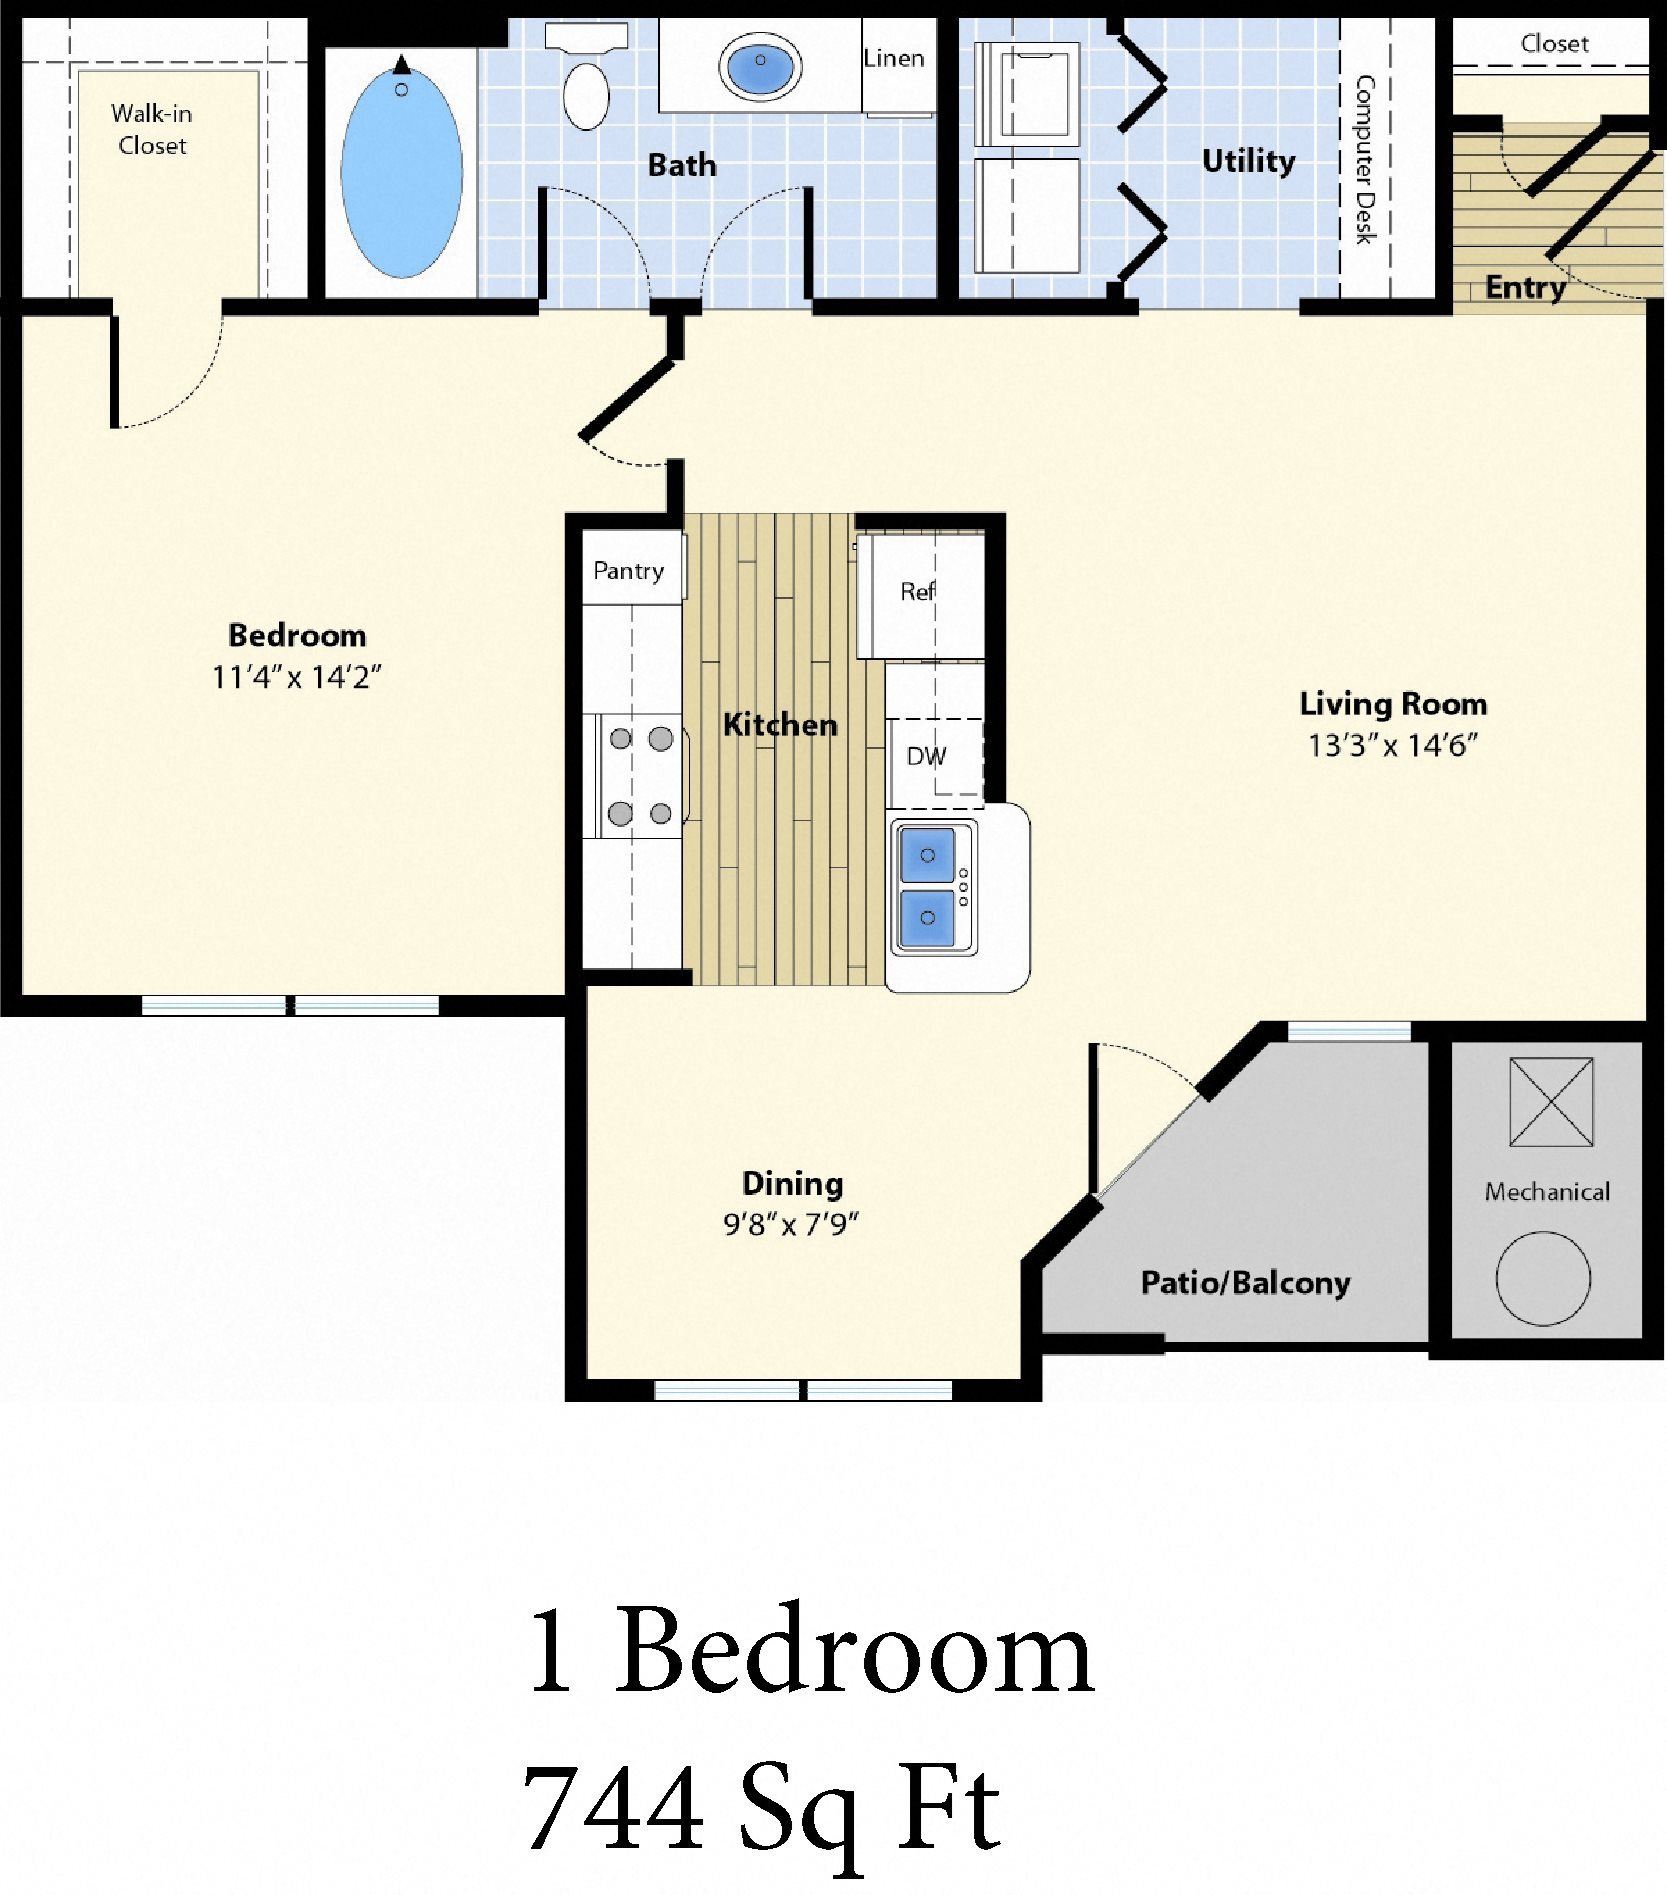 Floor Plans of The Commons at Boston Road in Billerica, MA